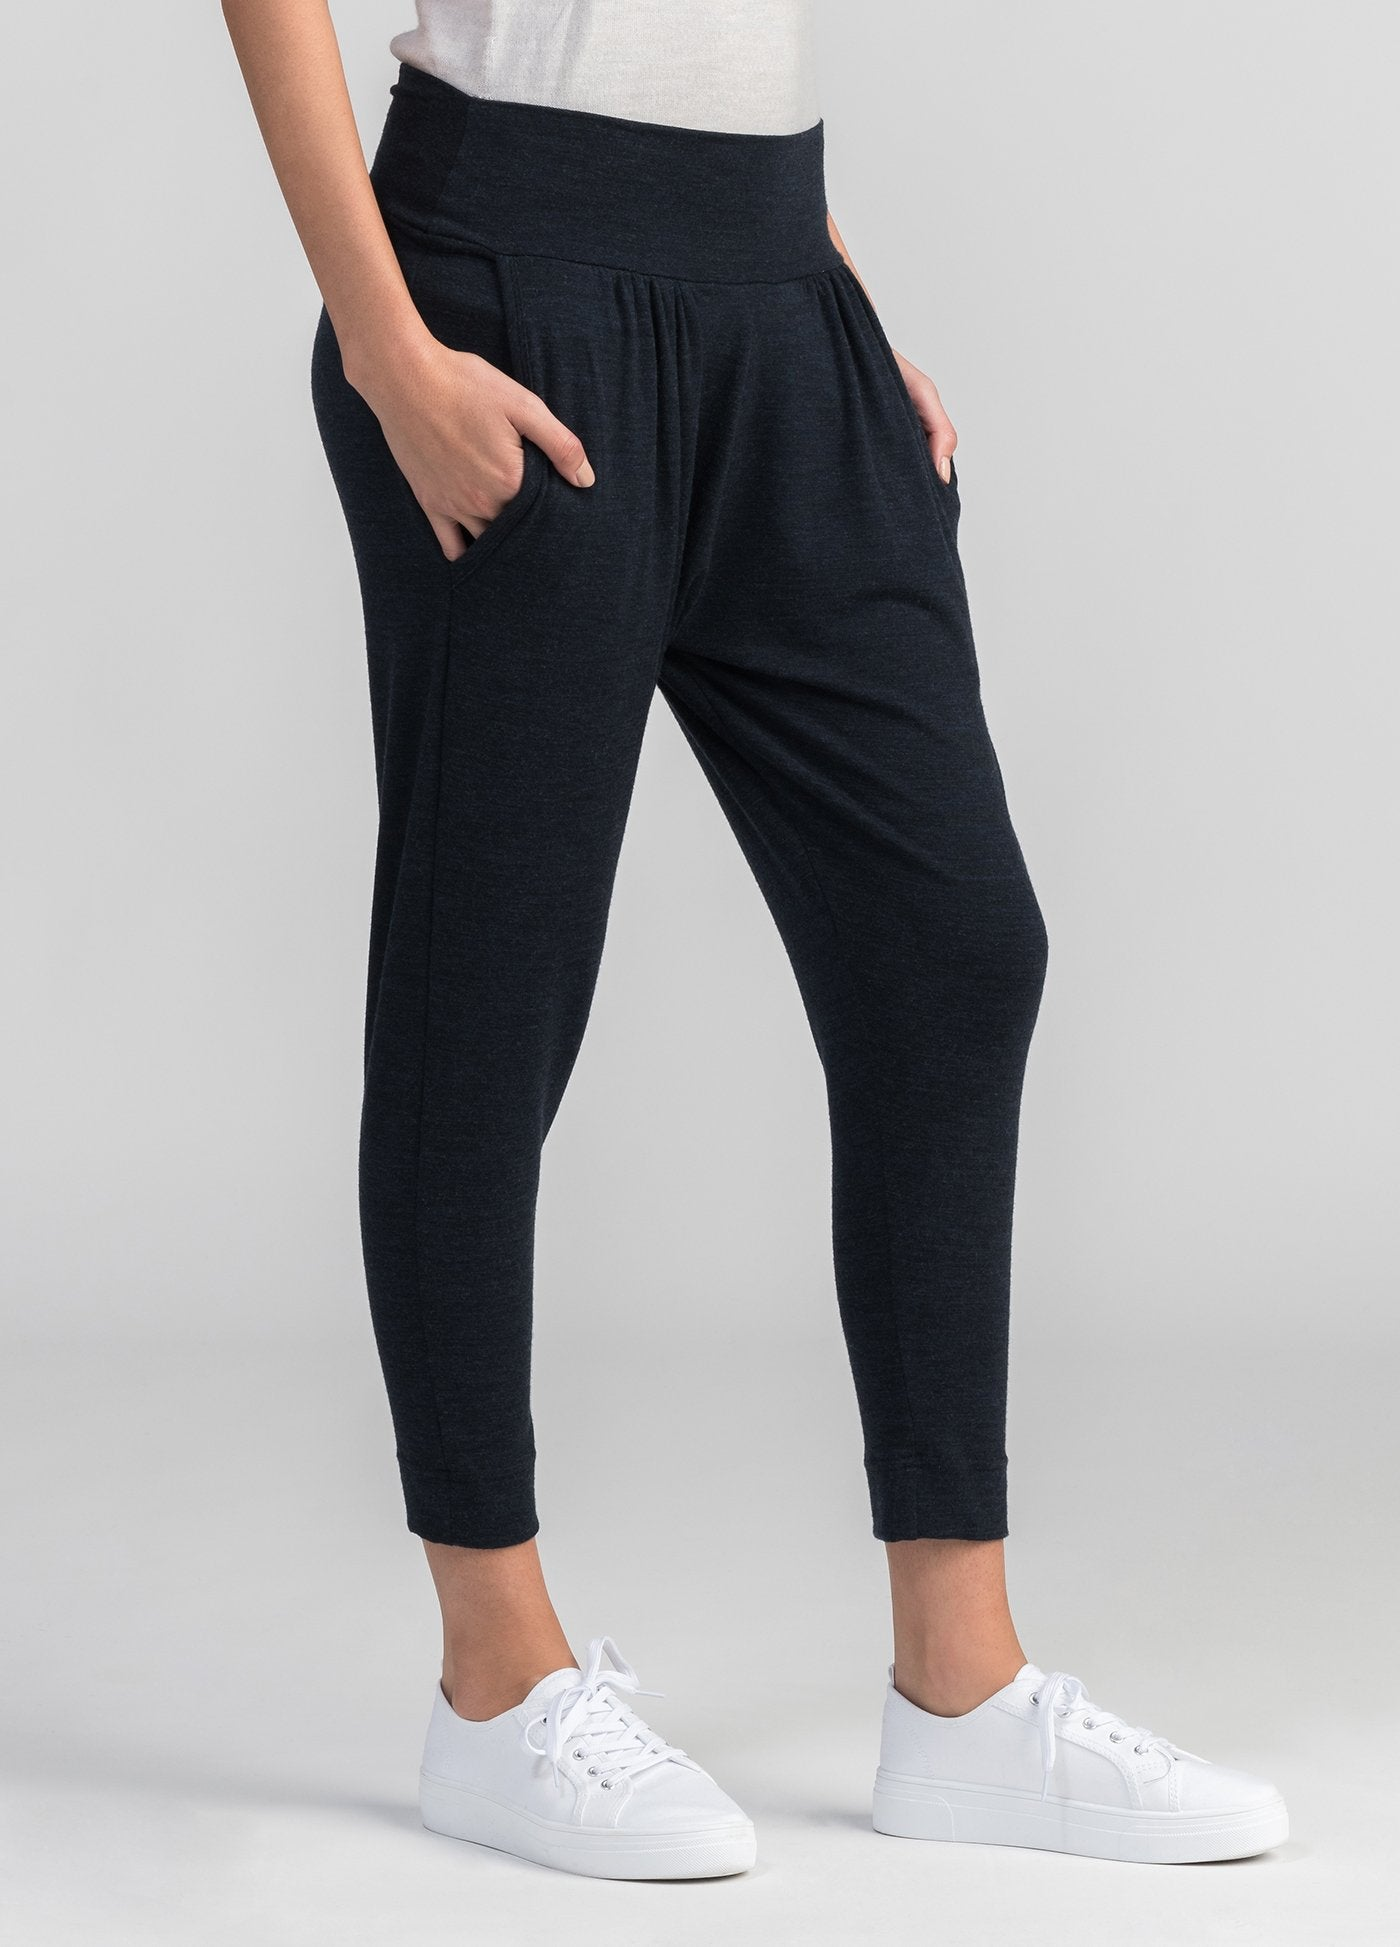 SLIM POCKET PANT